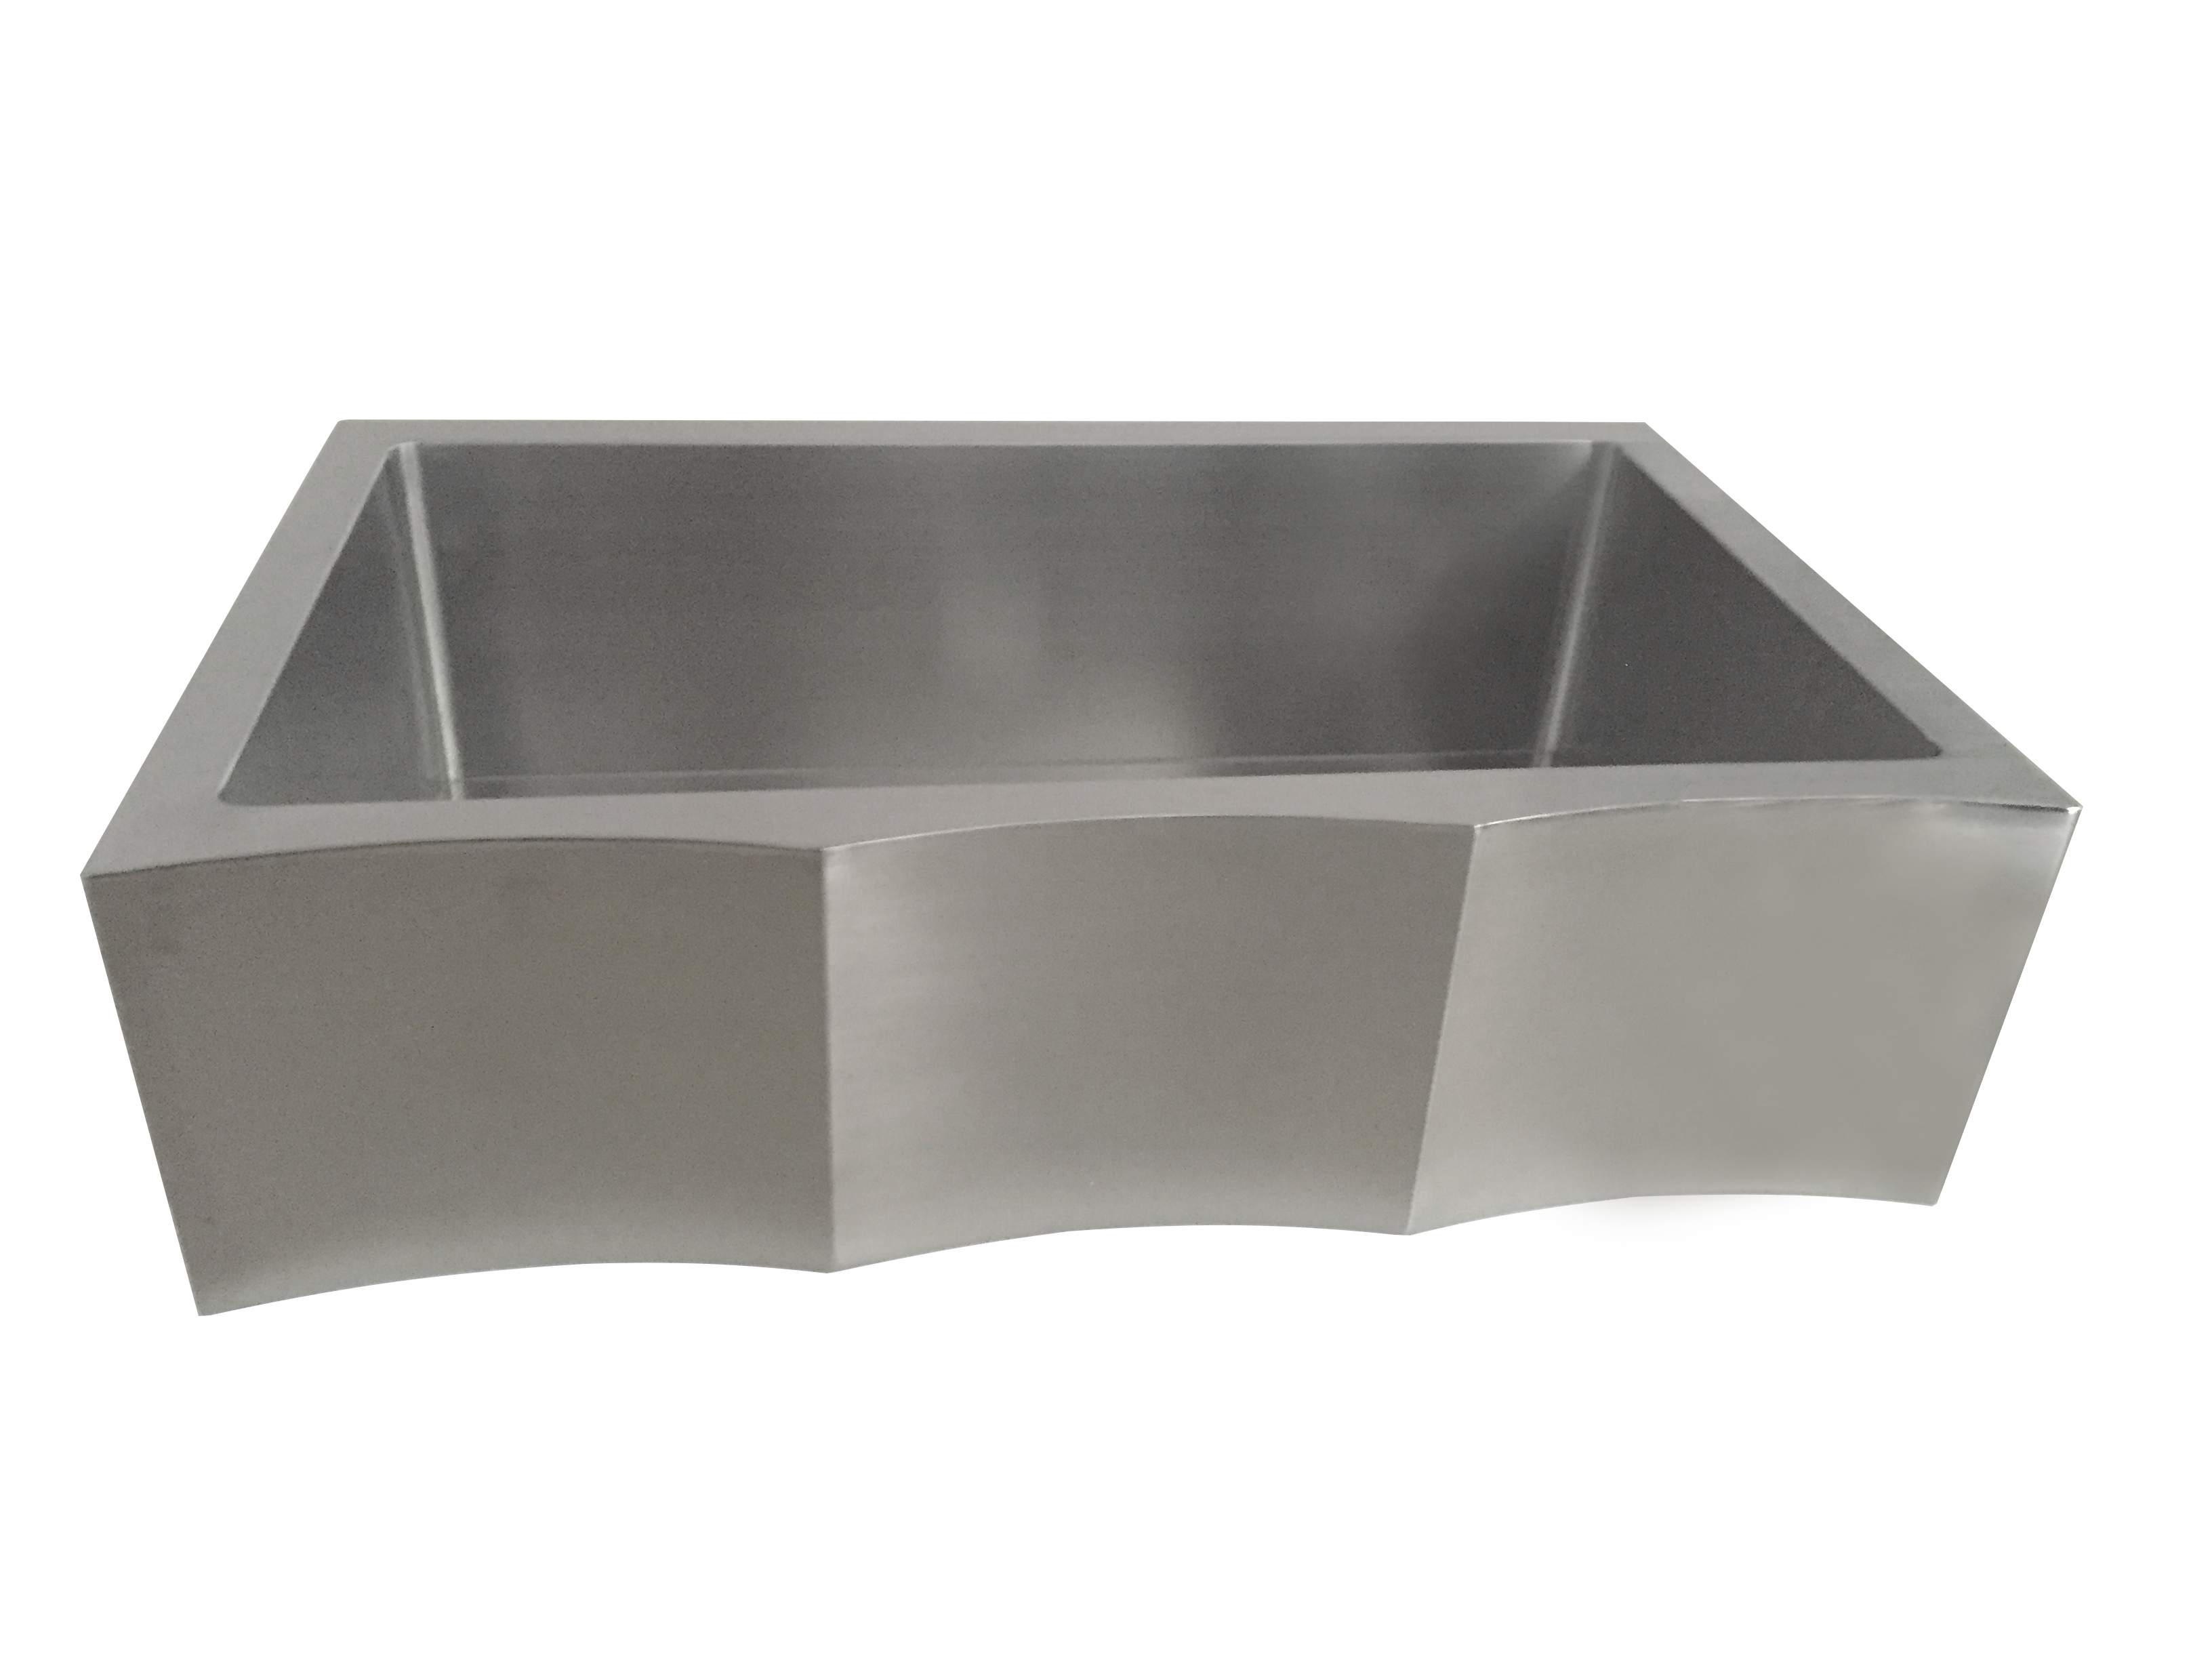 kitchen stainless steel sink as355 36 quot x 22 quot x 10 quot 18g single bowl apron legend 6124